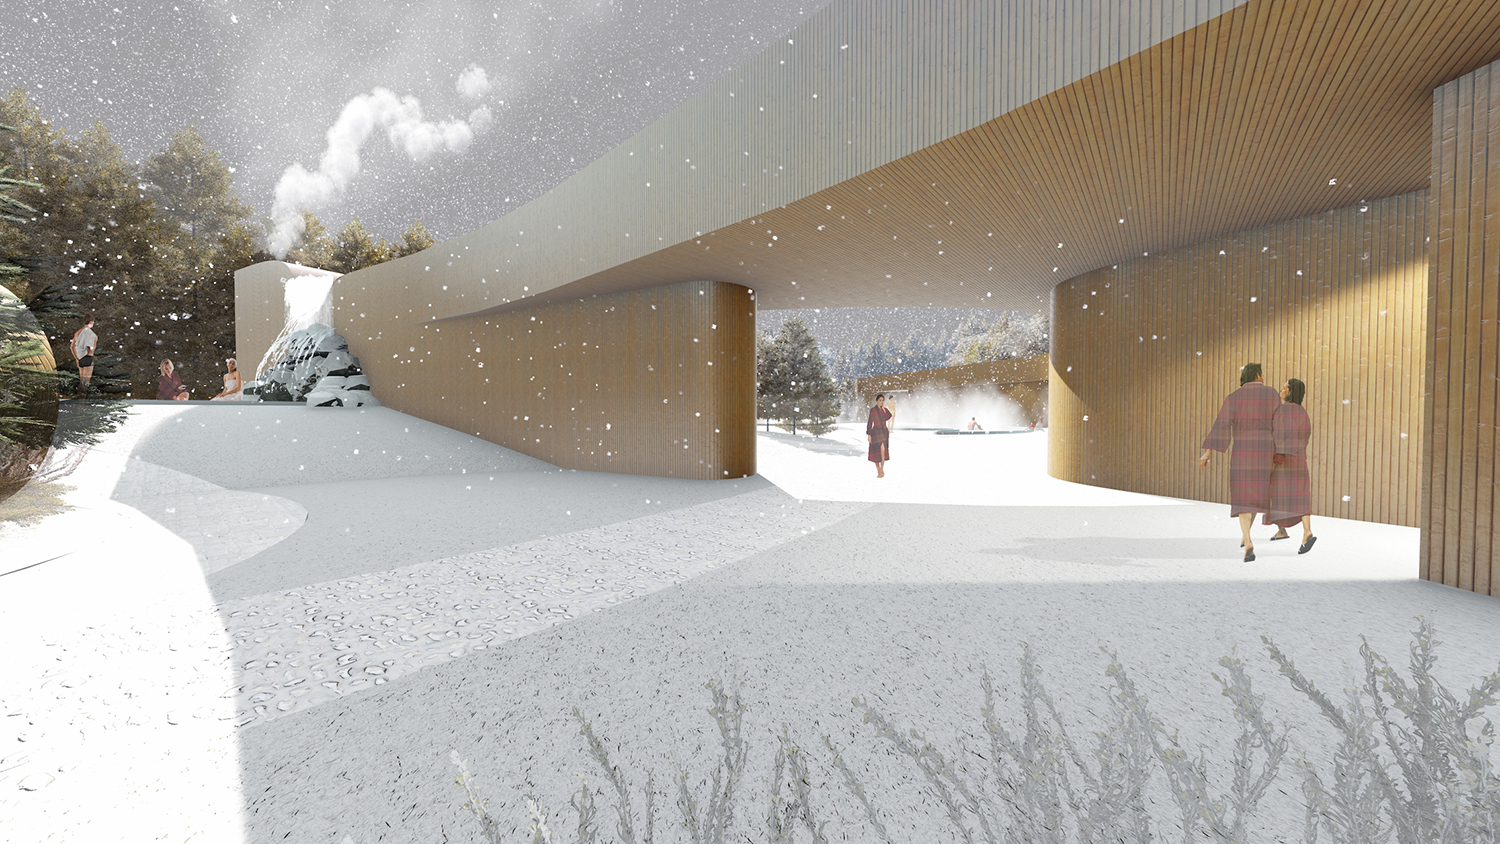 A group of home-grown entrepreneurs have revealed an exciting vision to bring the city of Edmonton its own signature take on a Scandinavian-style, indoor-outdoor spa facility.